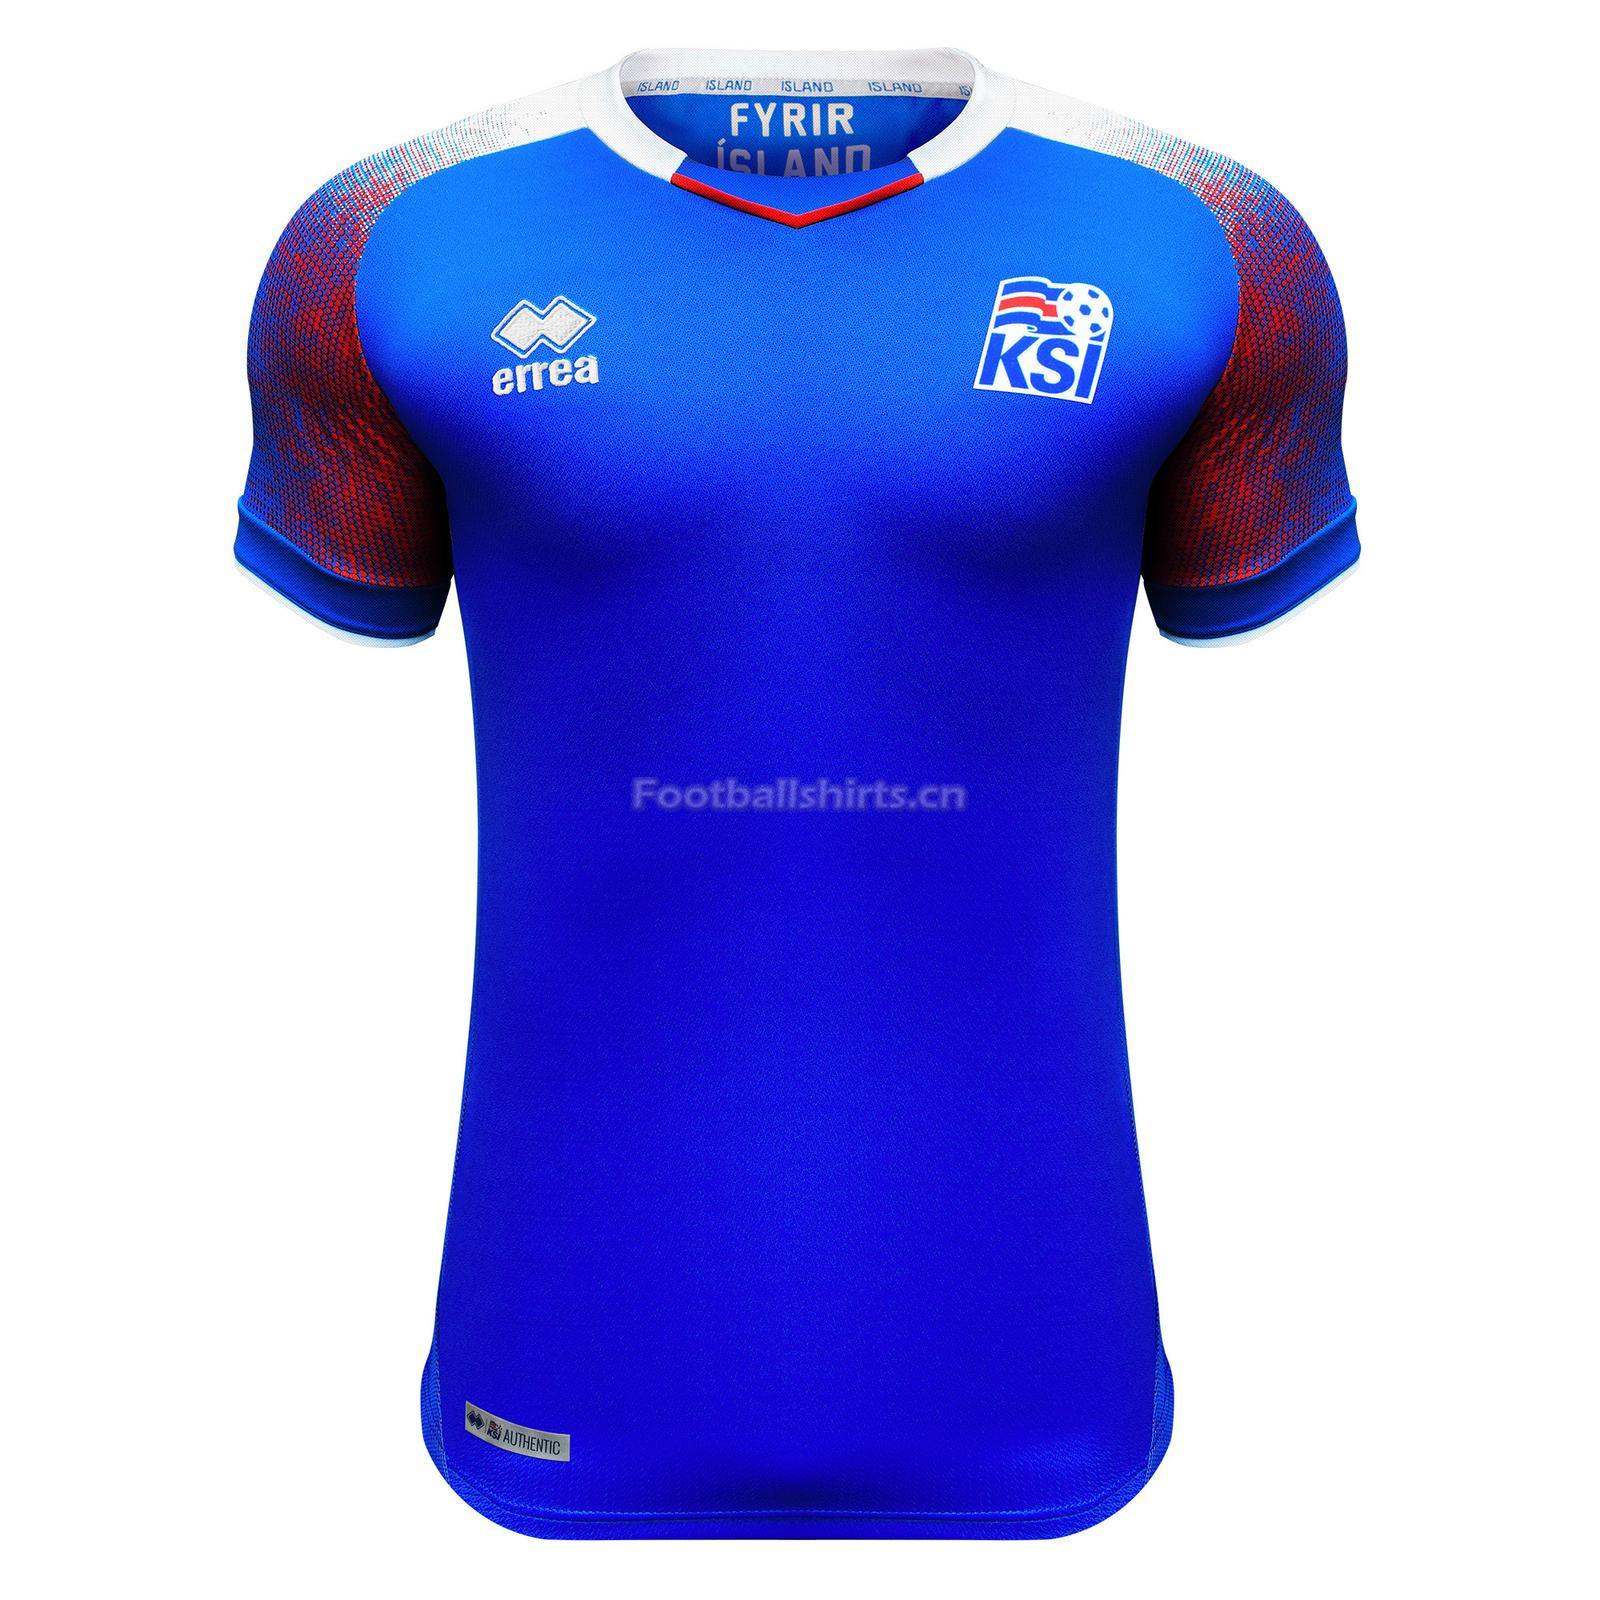 Iceland 2018 FIFA World Cup Home Soccer Jersey Blue